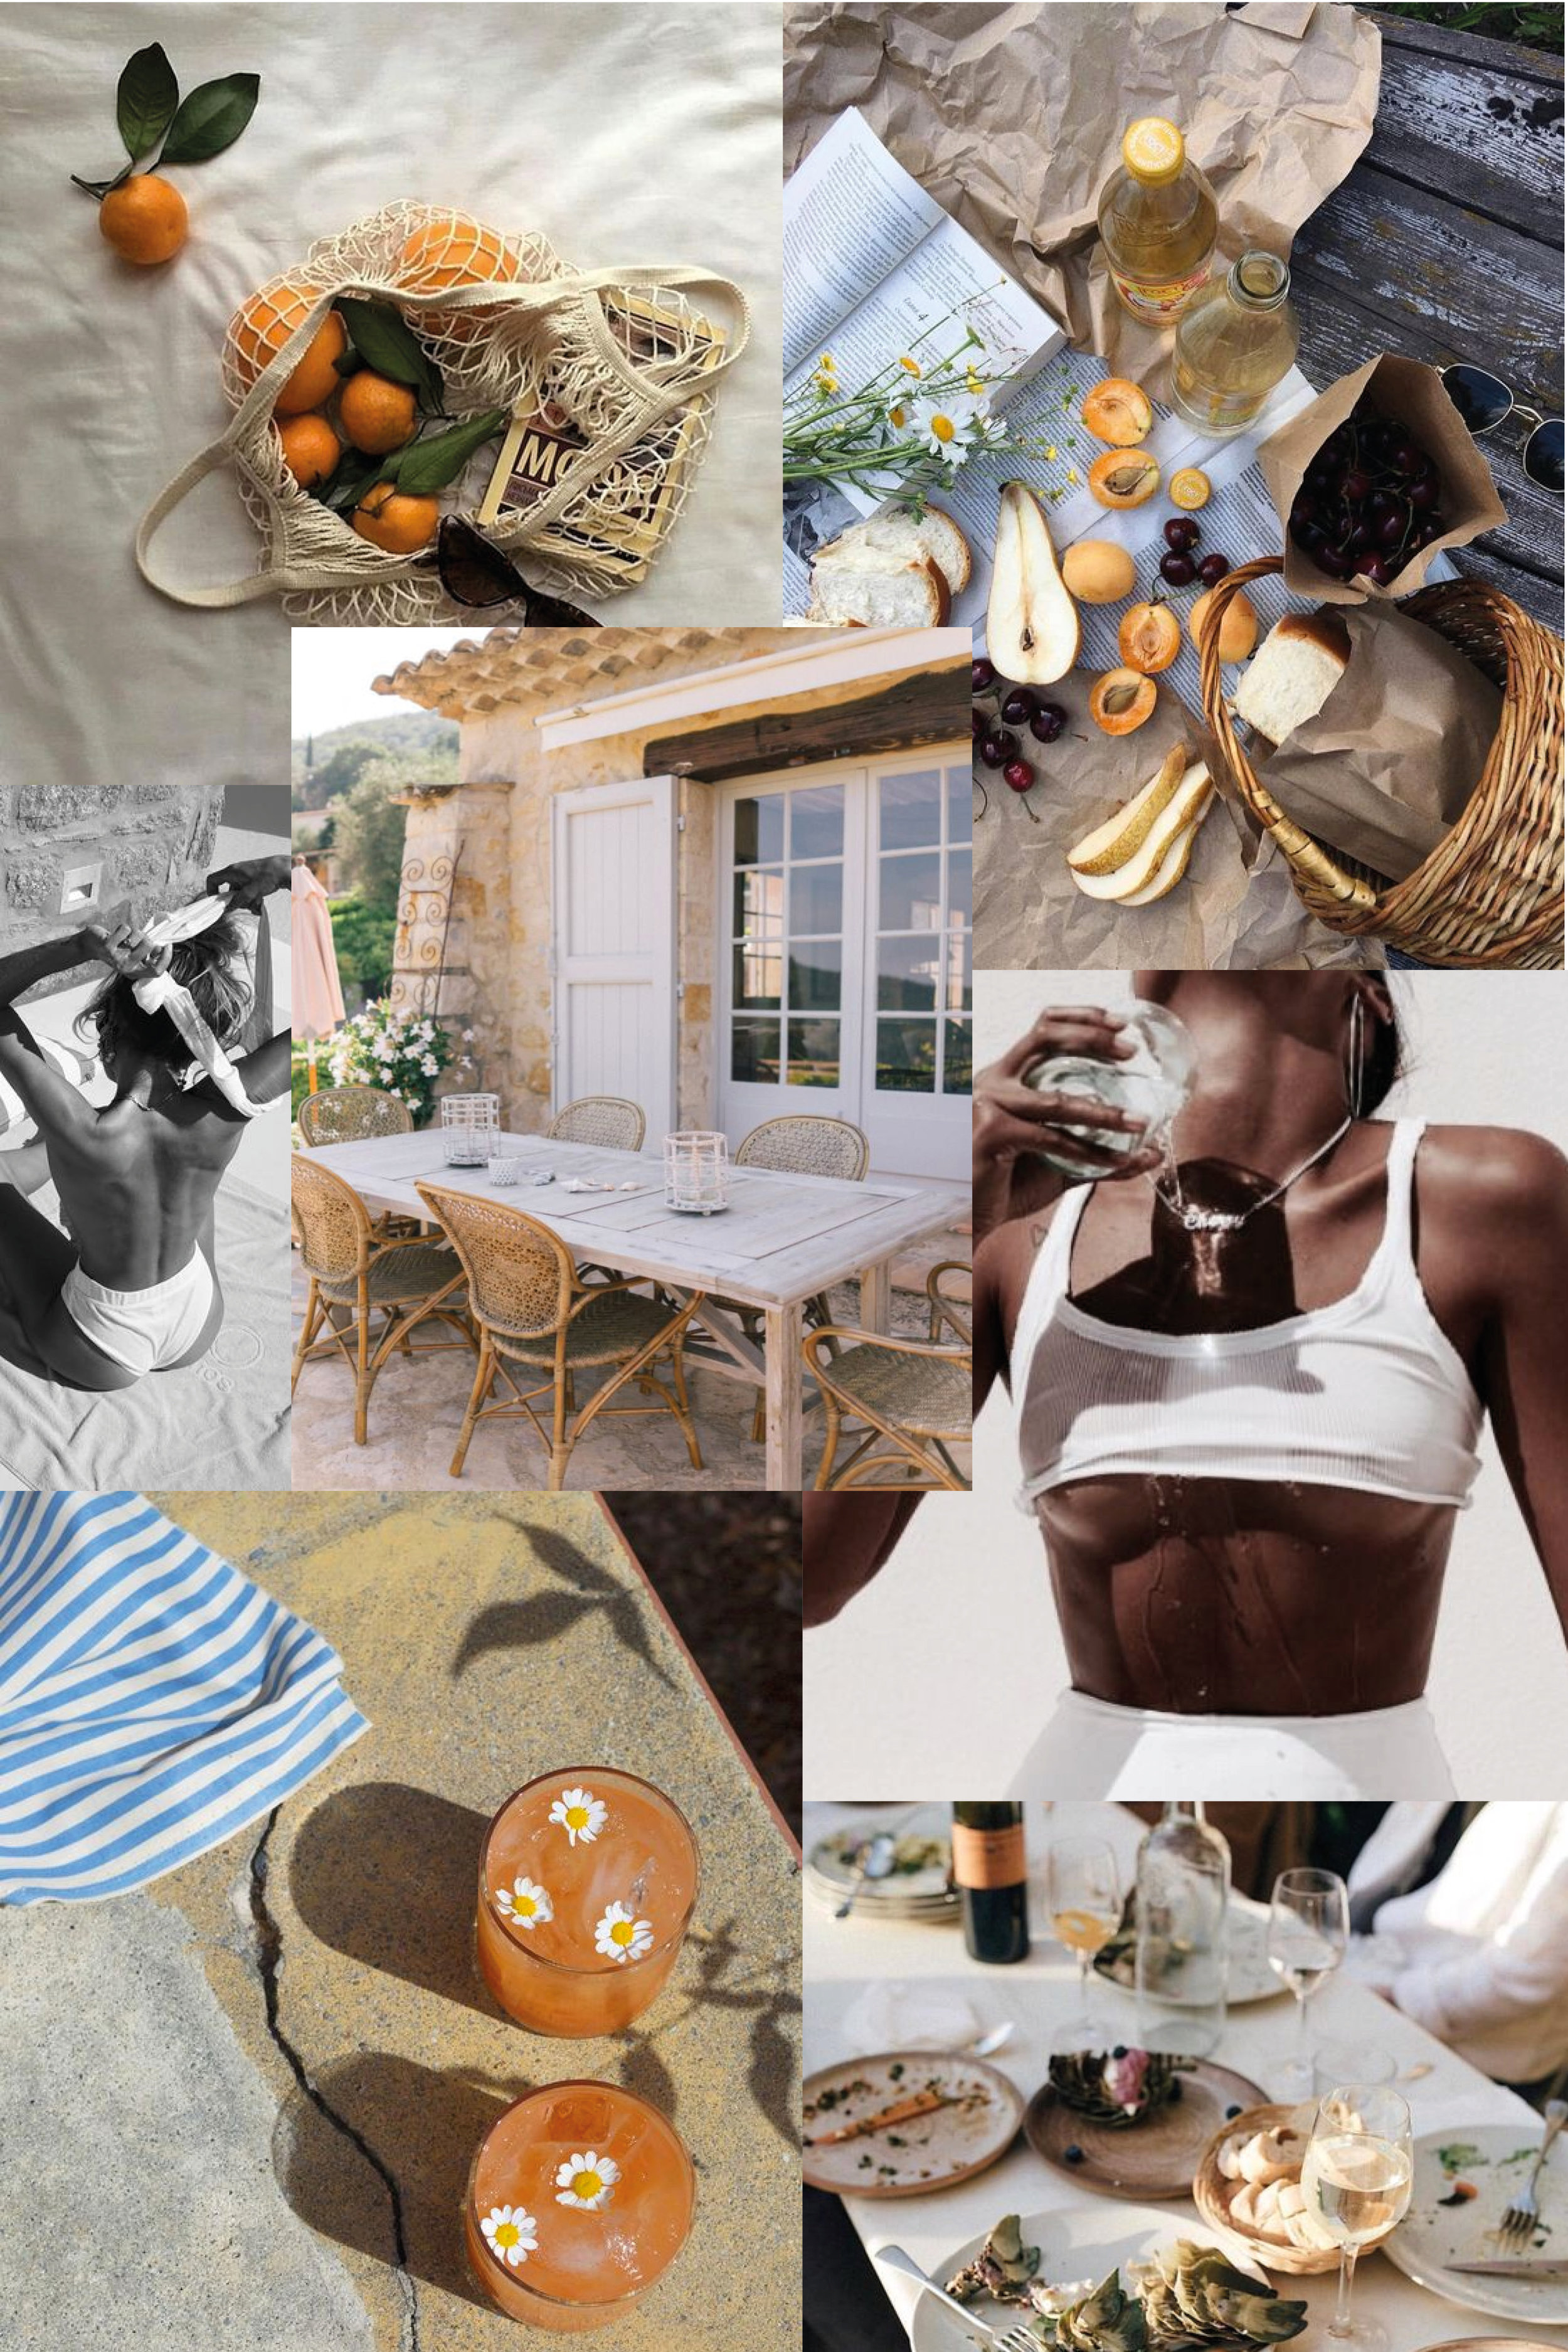 Always Looking For The Magic - Nicole Toland - August Mood Board